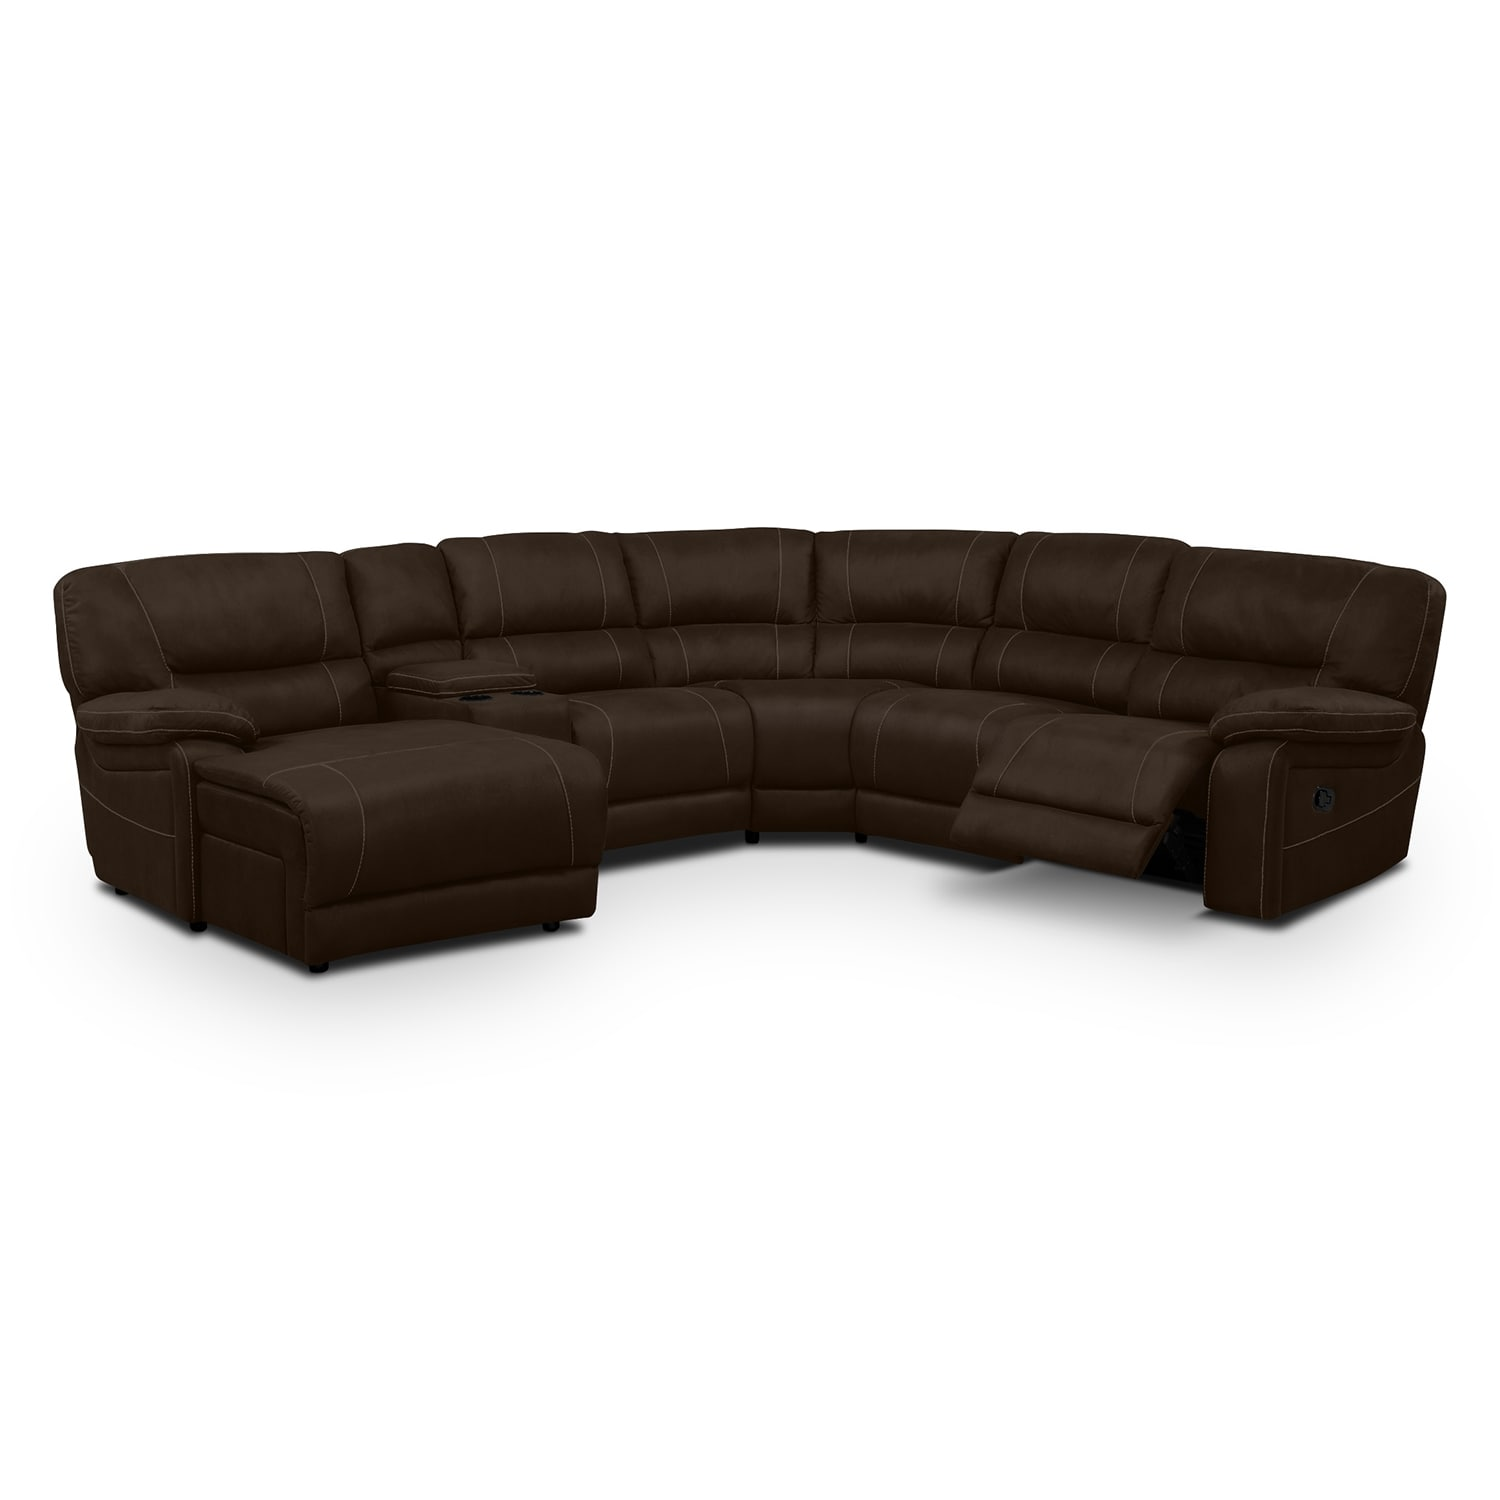 Living Room Furniture - Wyoming 5-Piece Reclining Sectional with Left-Facing Chaise - Saddle Brown